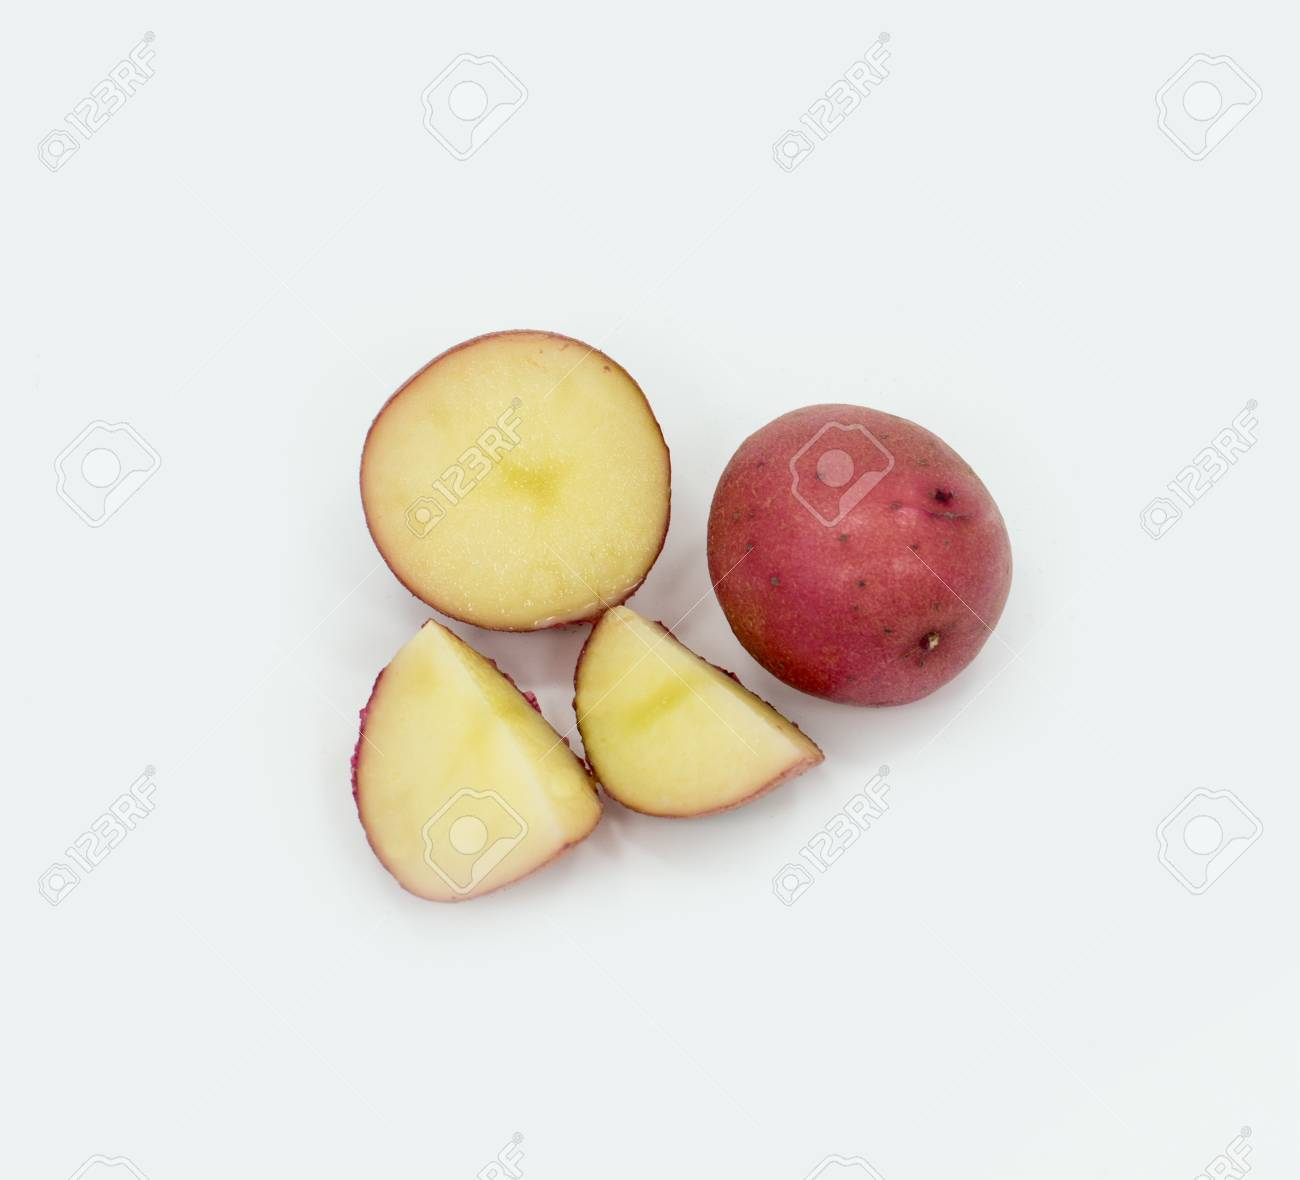 Red Skin White Flesh Potatoes Stock Photo - 17486880